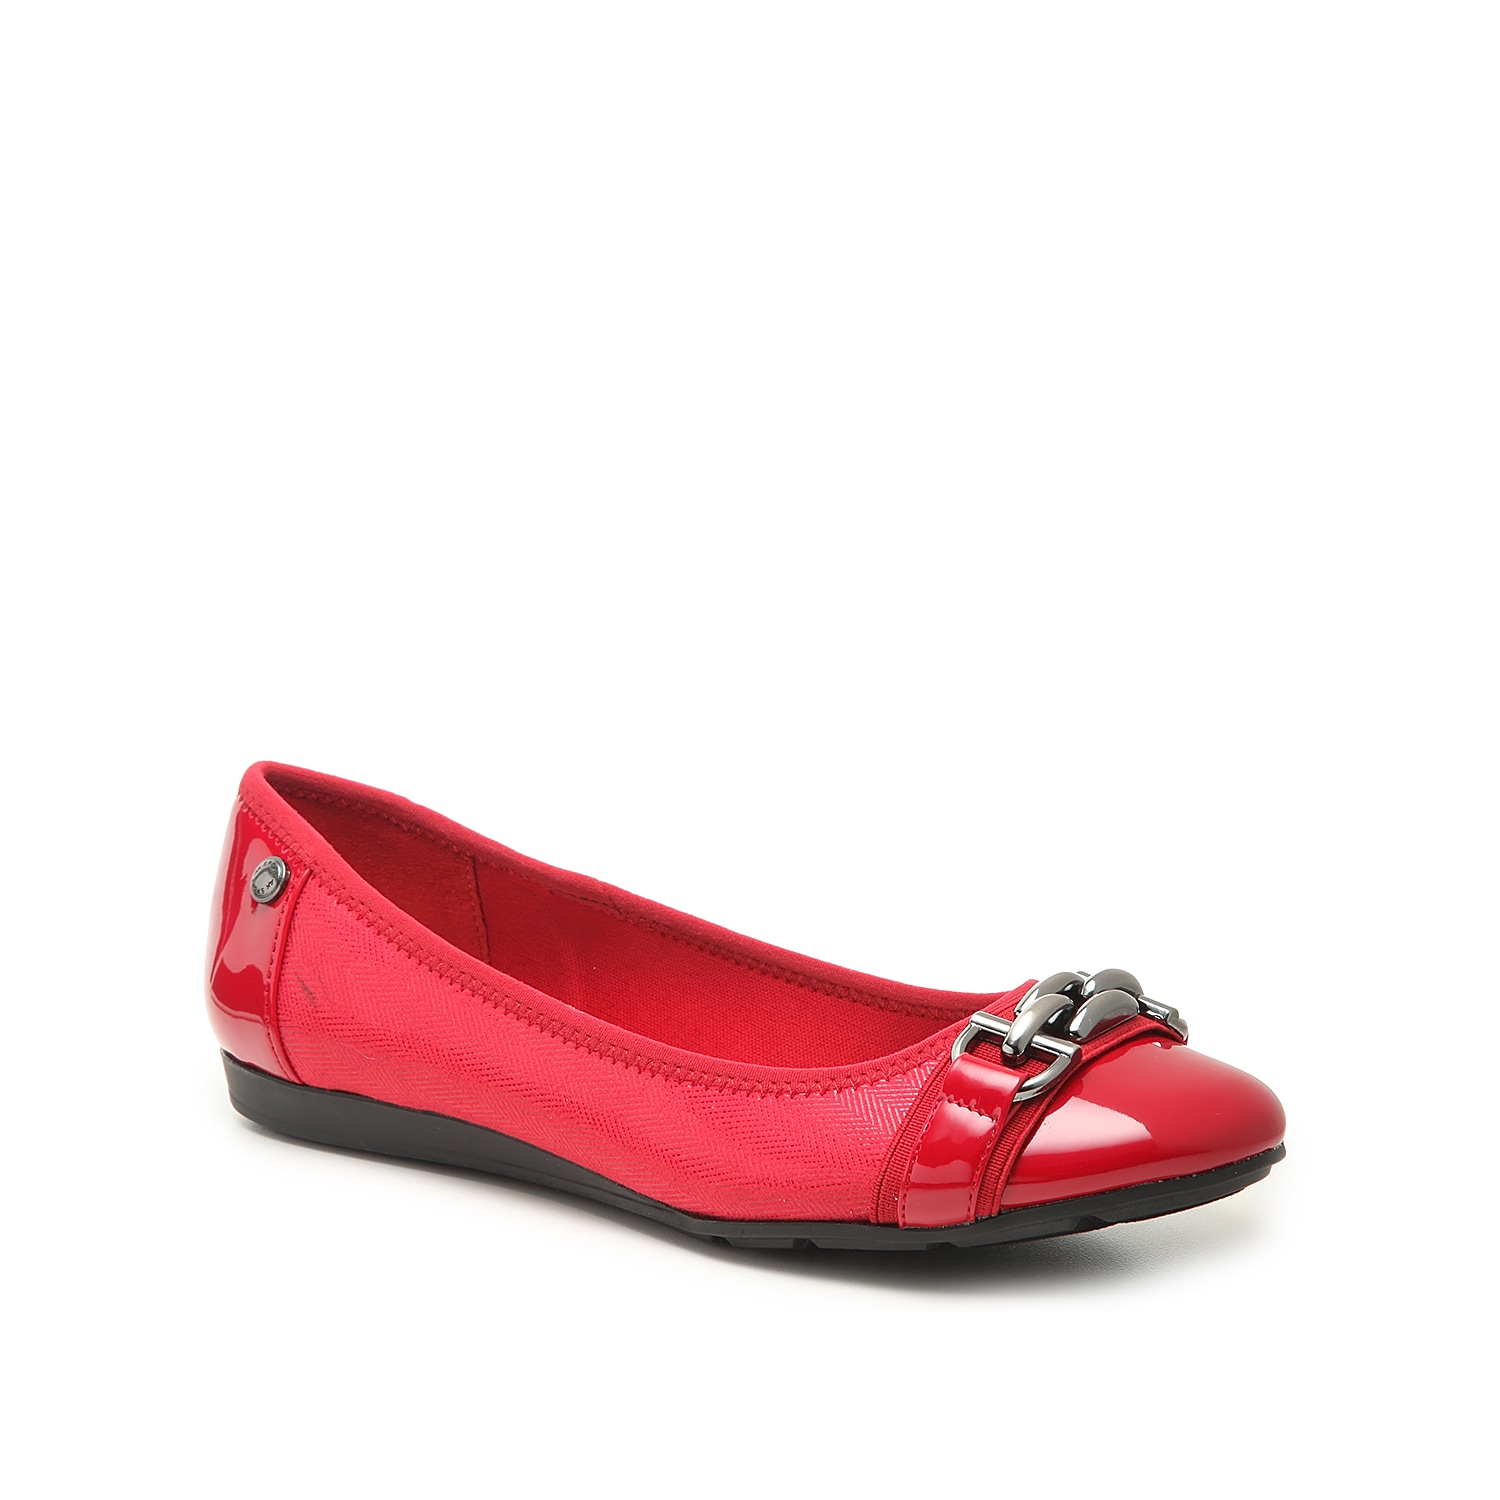 For a classic look that will stay in style for seasons to come, go with the Sport Alexa ballet flat from Anne Klein!